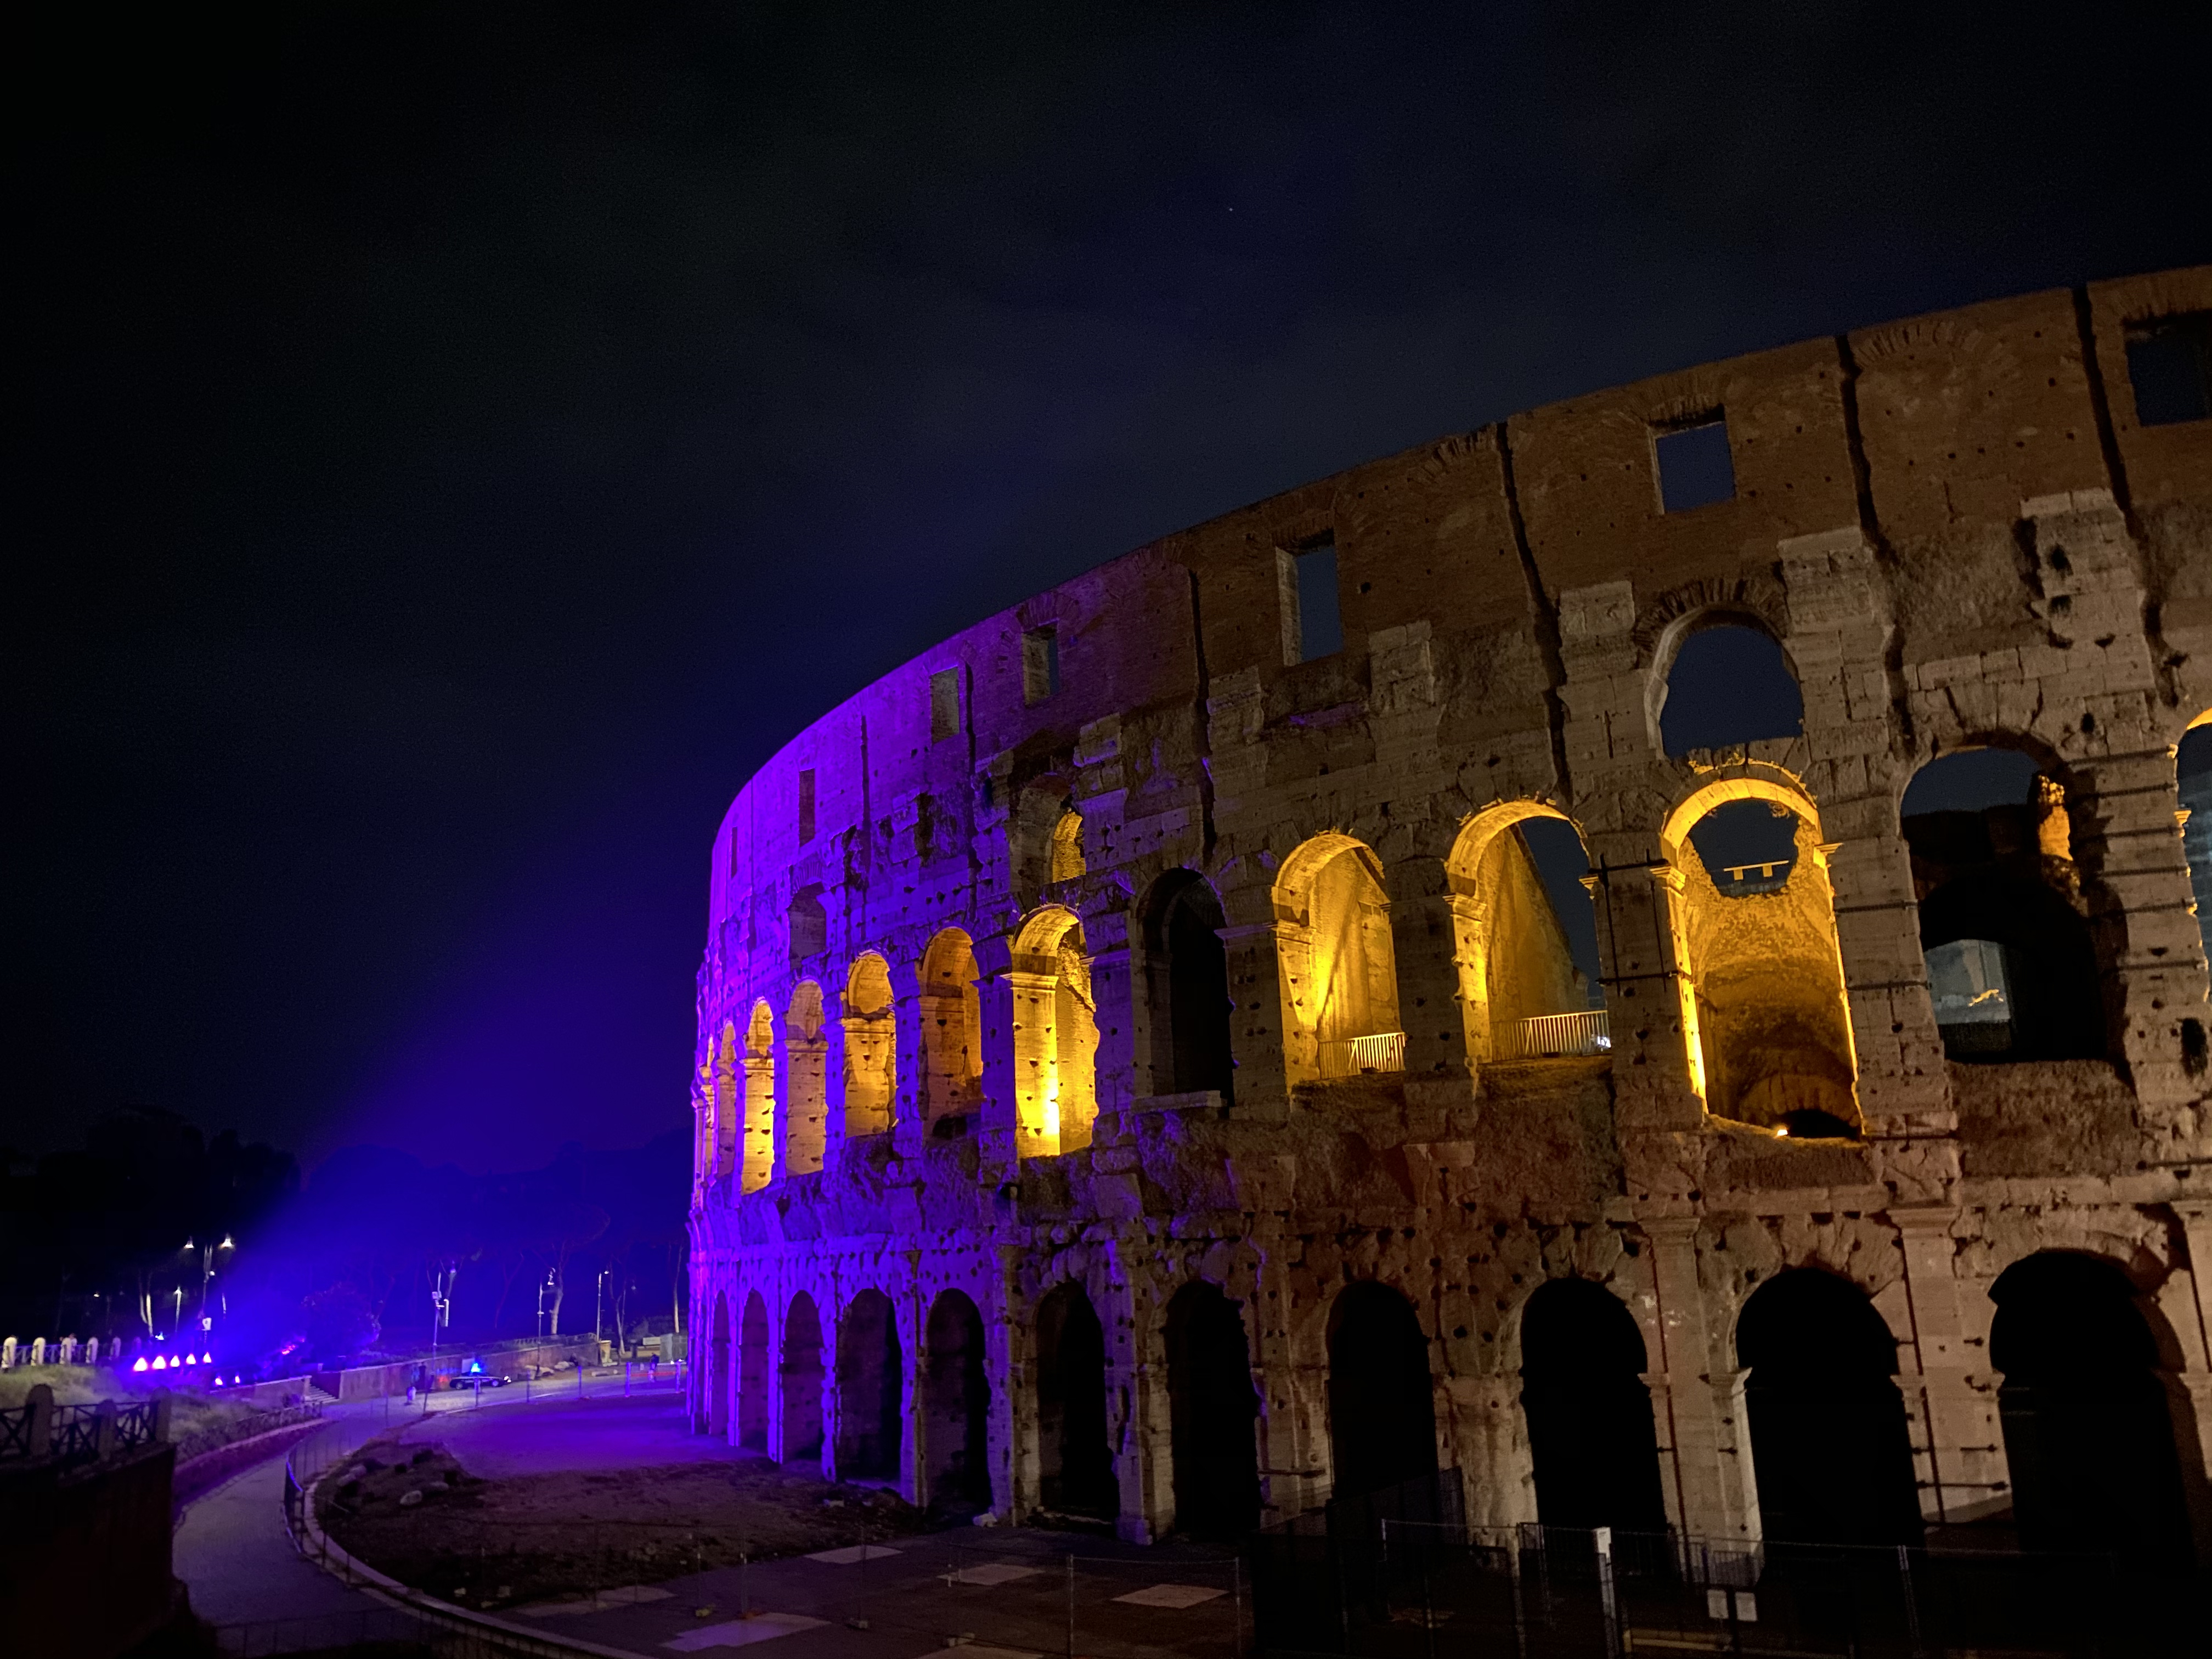 Purple lights hitting the Colosseum at night (wide lens).